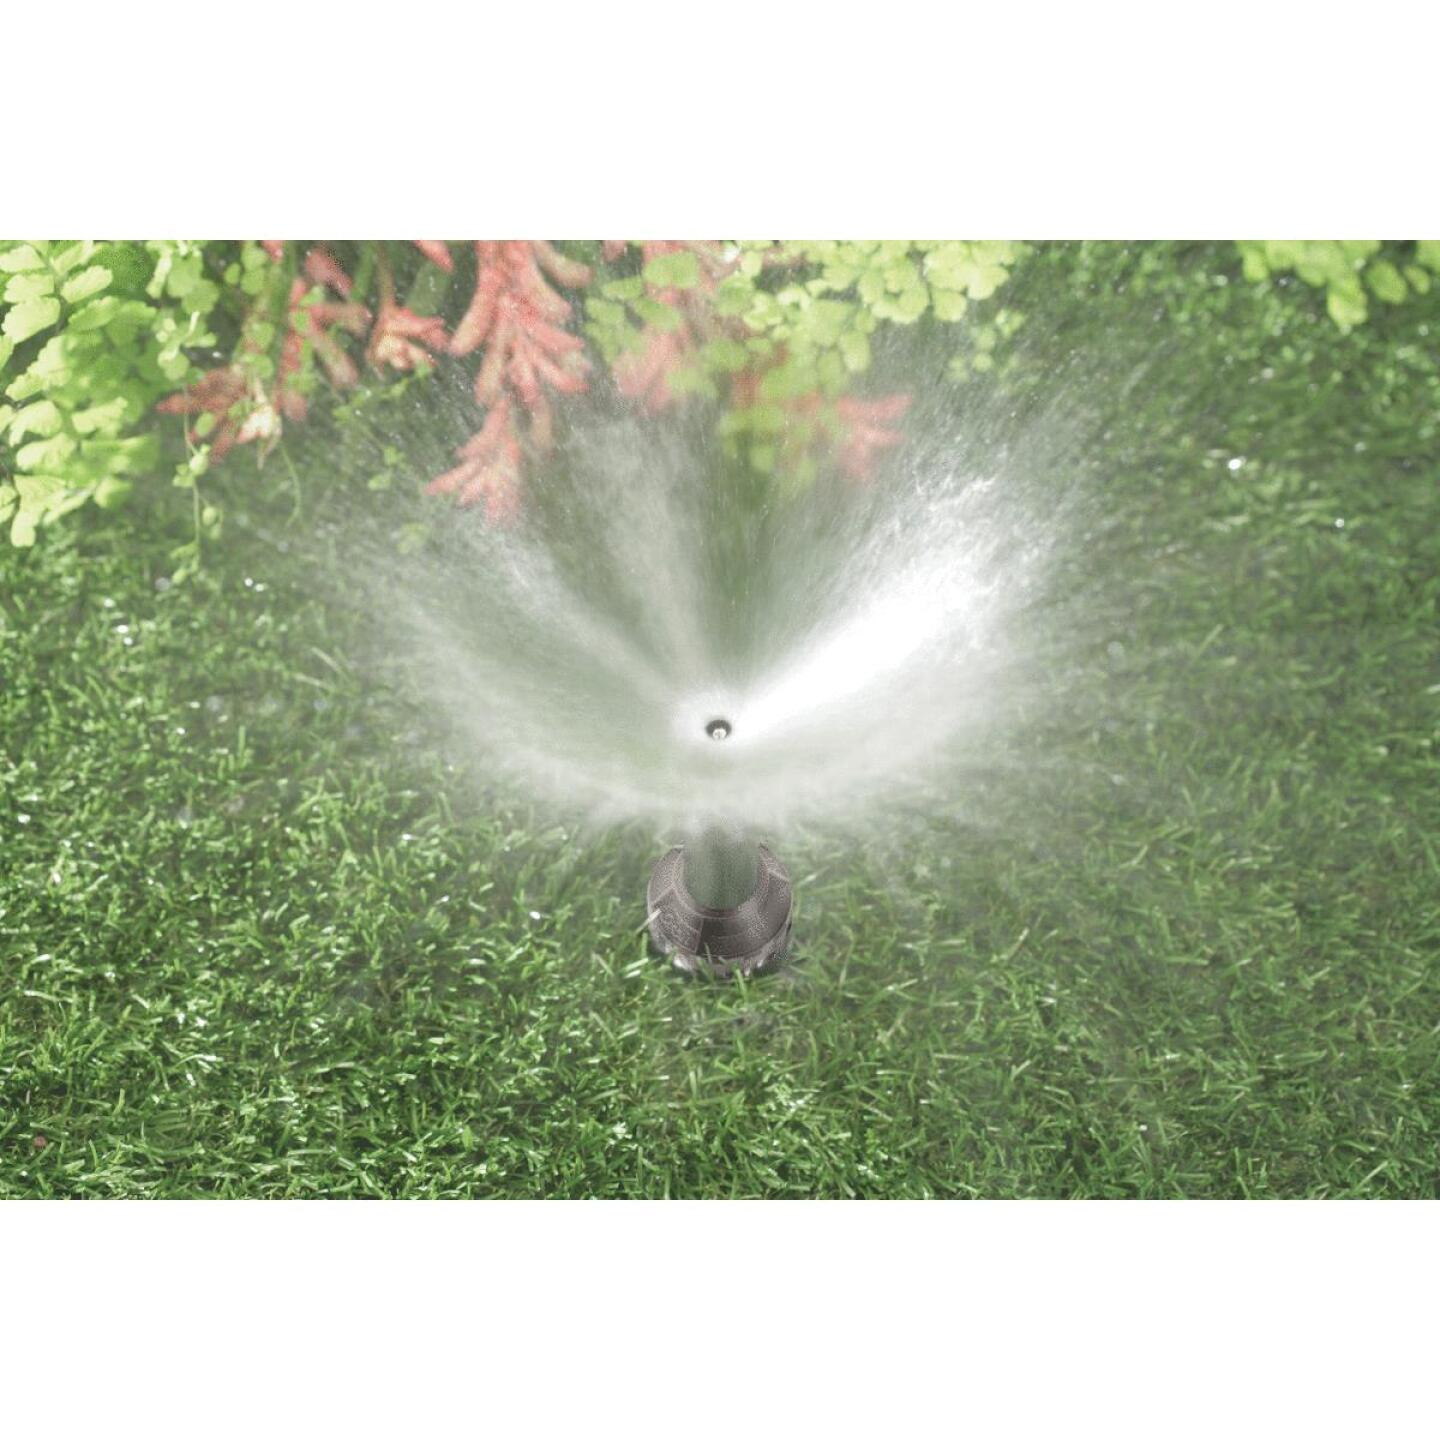 Orbit WaterMaster 2.125 In. Full Circle Plastic Sprinkler Pop-Up Head Image 2